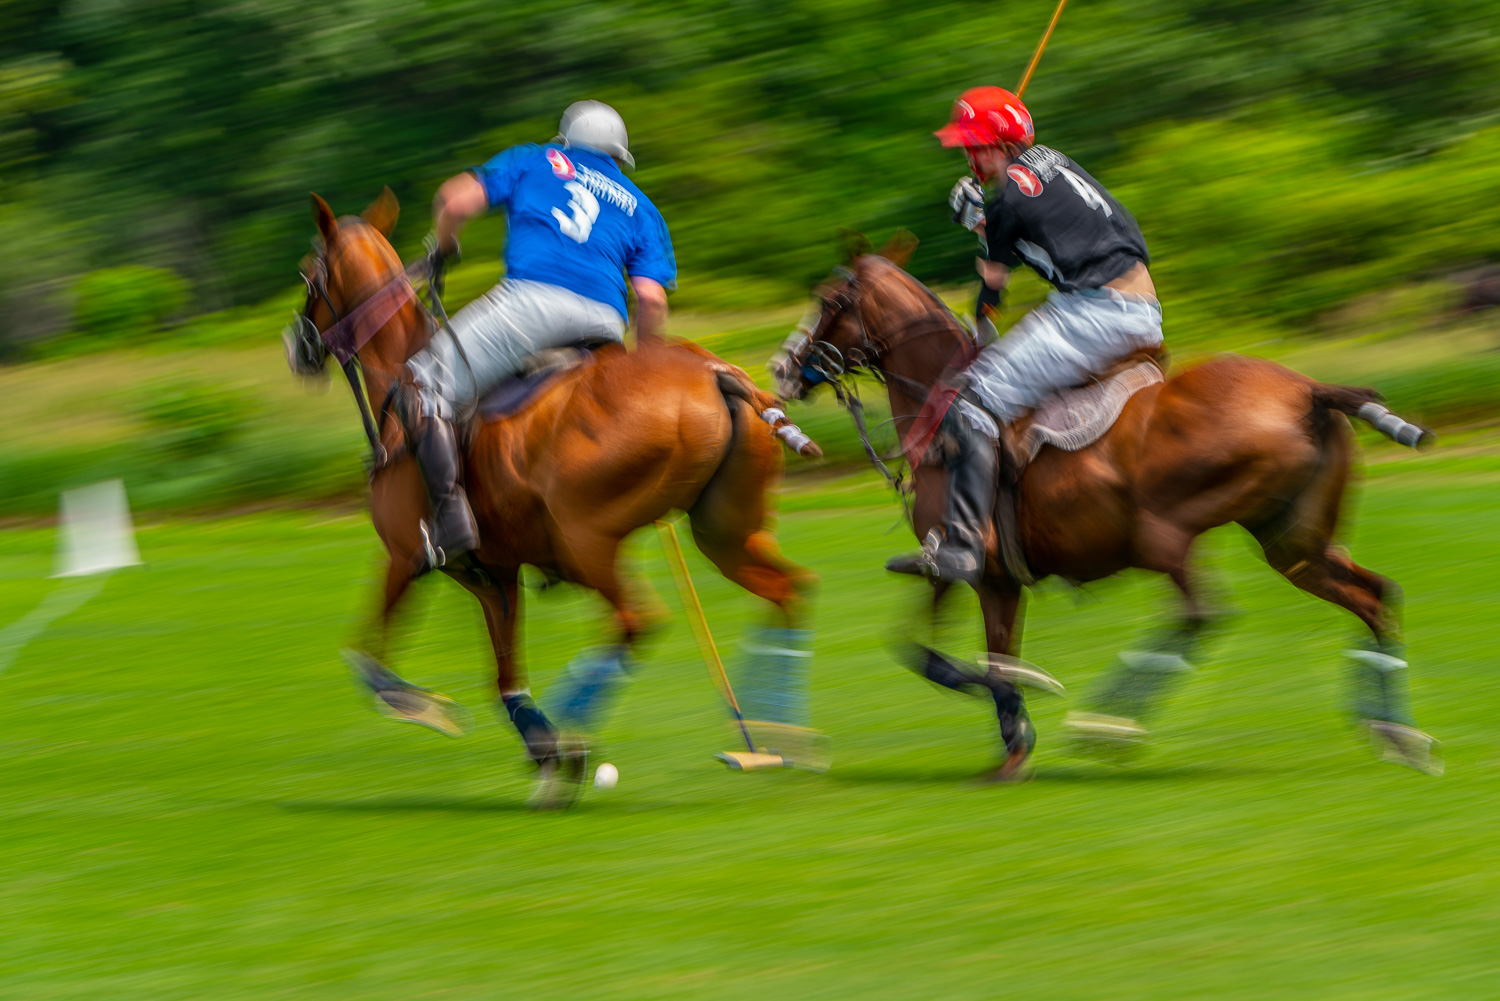 _Battling for the ball at the Mashomack Polo Club in pine plains, ny.  Blurs create a sense of speed in the image..jpg